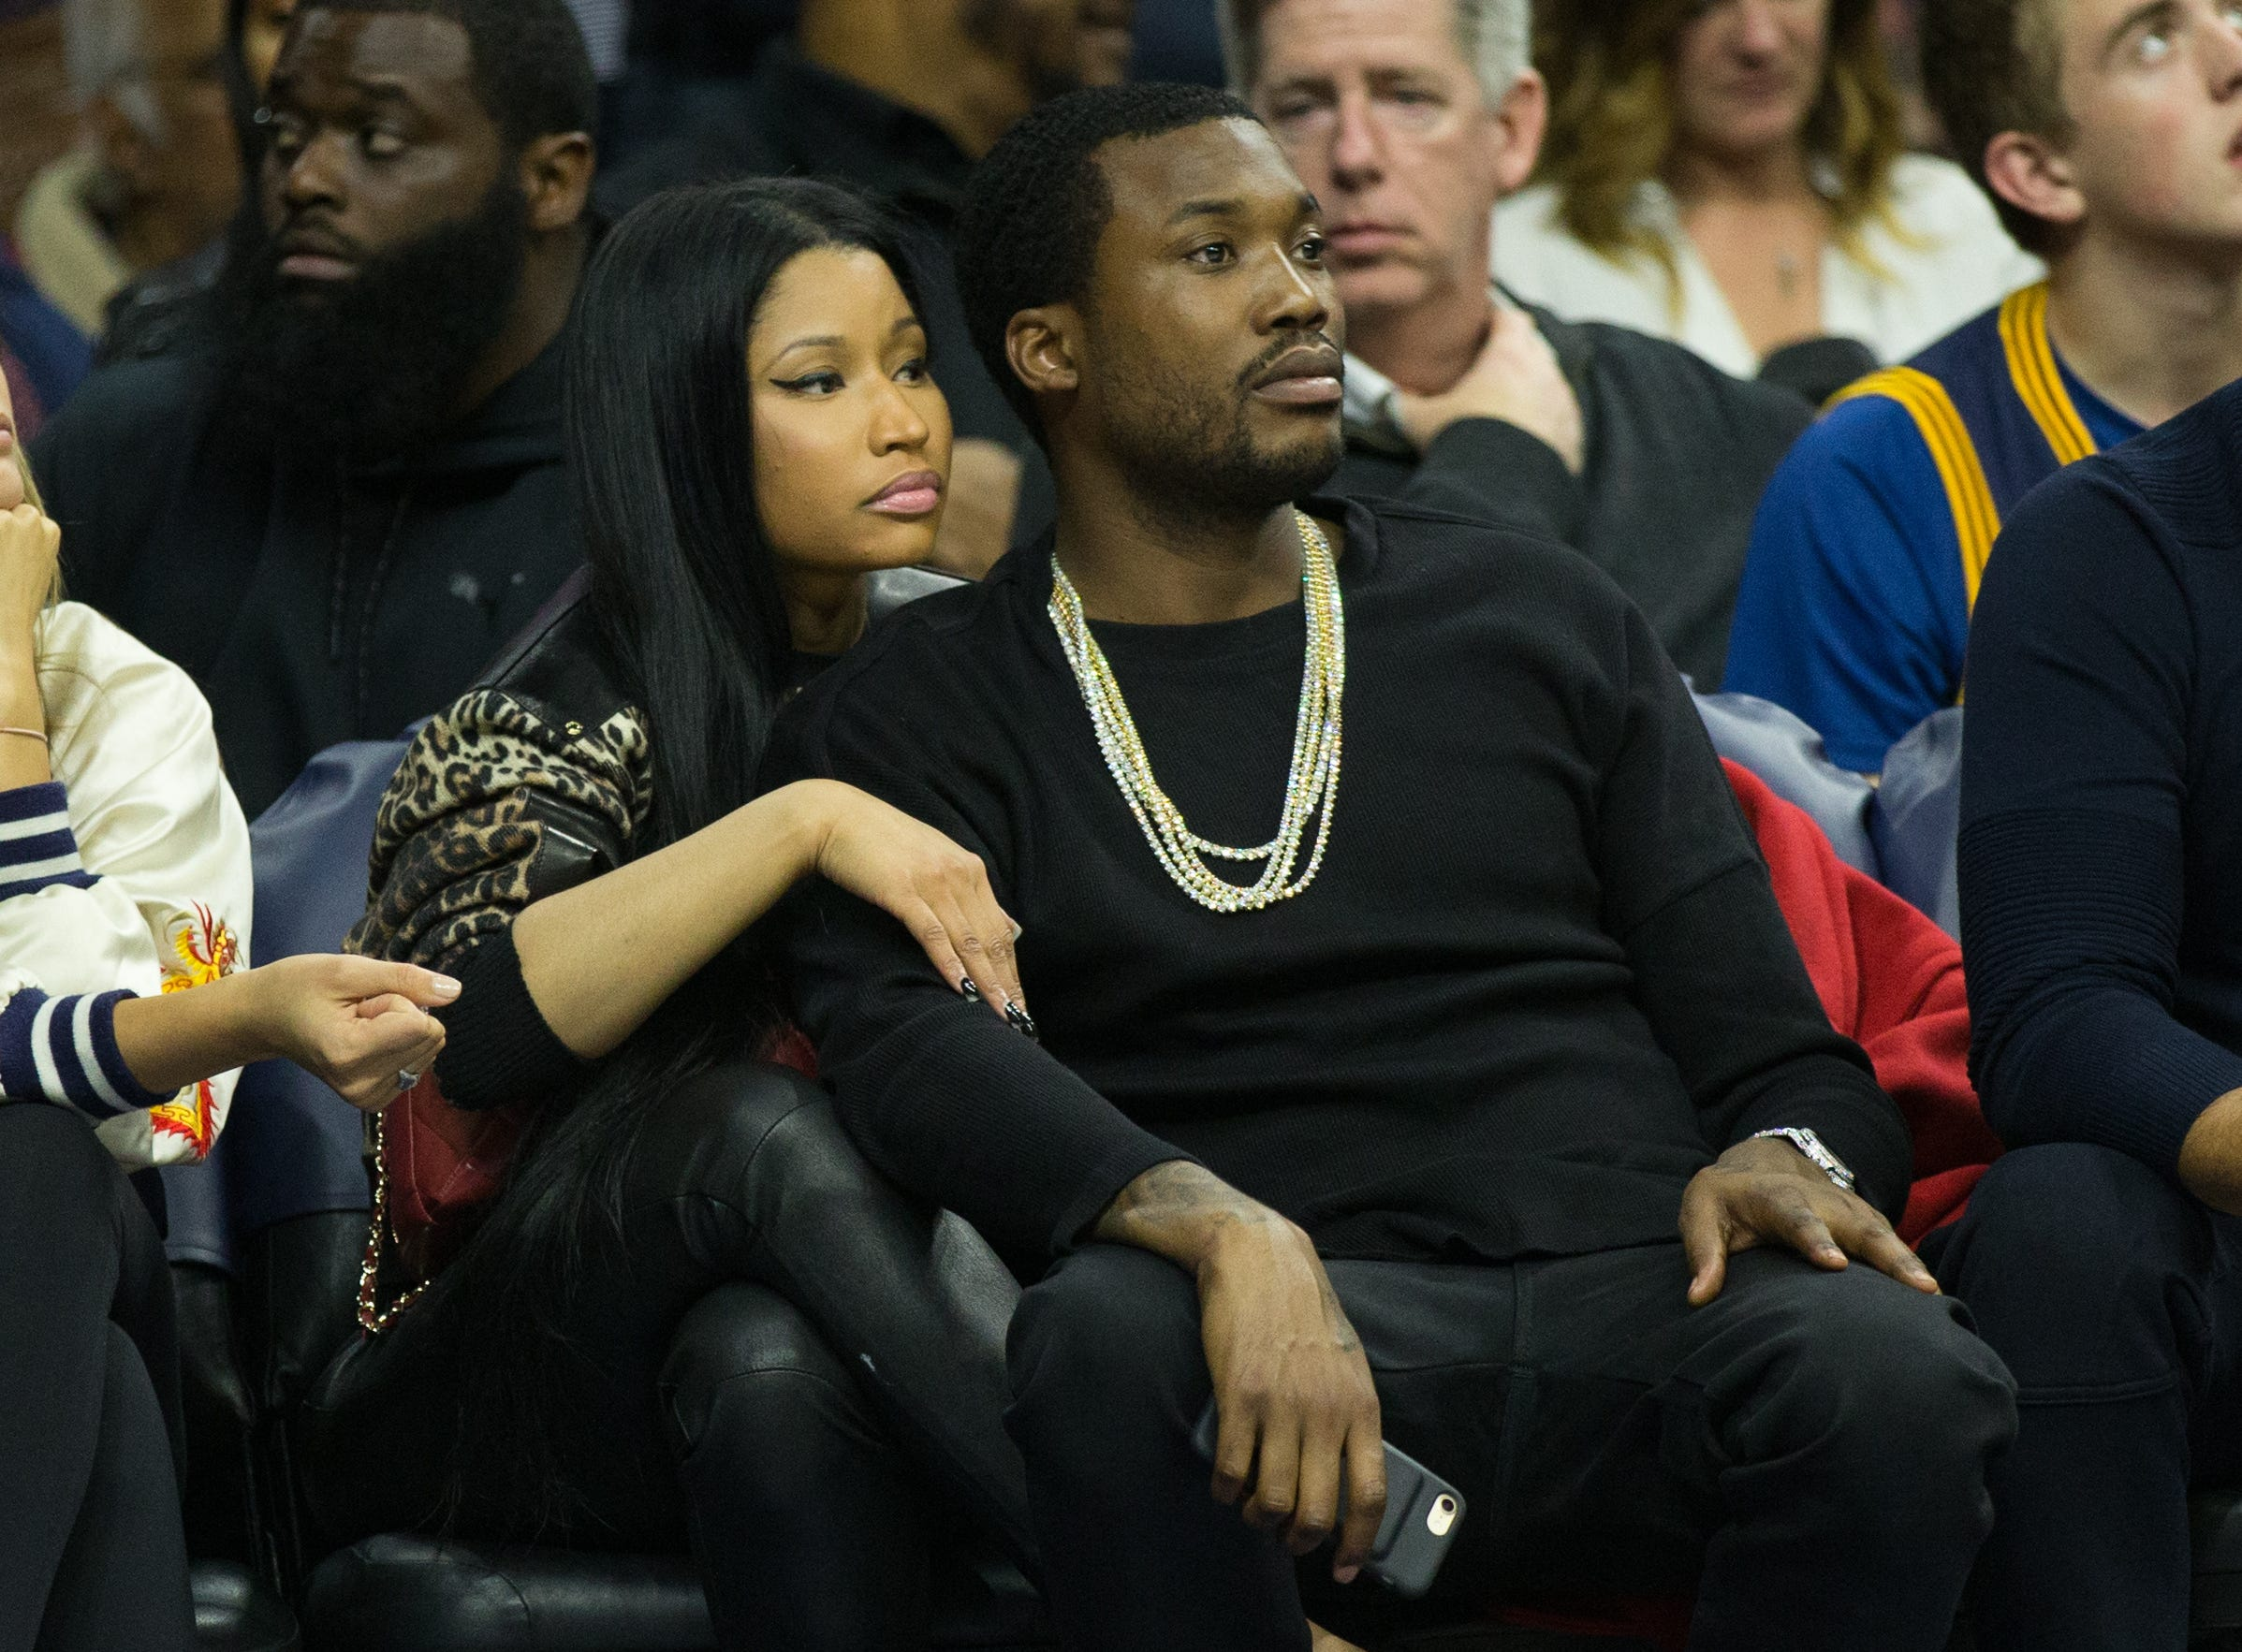 Nov 5, 2016; Philadelphia, PA, USA; Musical recording artist Nicki Minaj (L) and Meek Mill (R) during the second half of a game between the Philadelphia 76ers and the Cleveland Cavaliers at Wells Fargo Center. The Cleveland Cavaliers won 102-101. Mandatory Credit: Bill Streicher-USA TODAY Sports ORG XMIT: USATSI-323516 ORIG FILE ID:  20161105_twg_sq4_0172.jpg